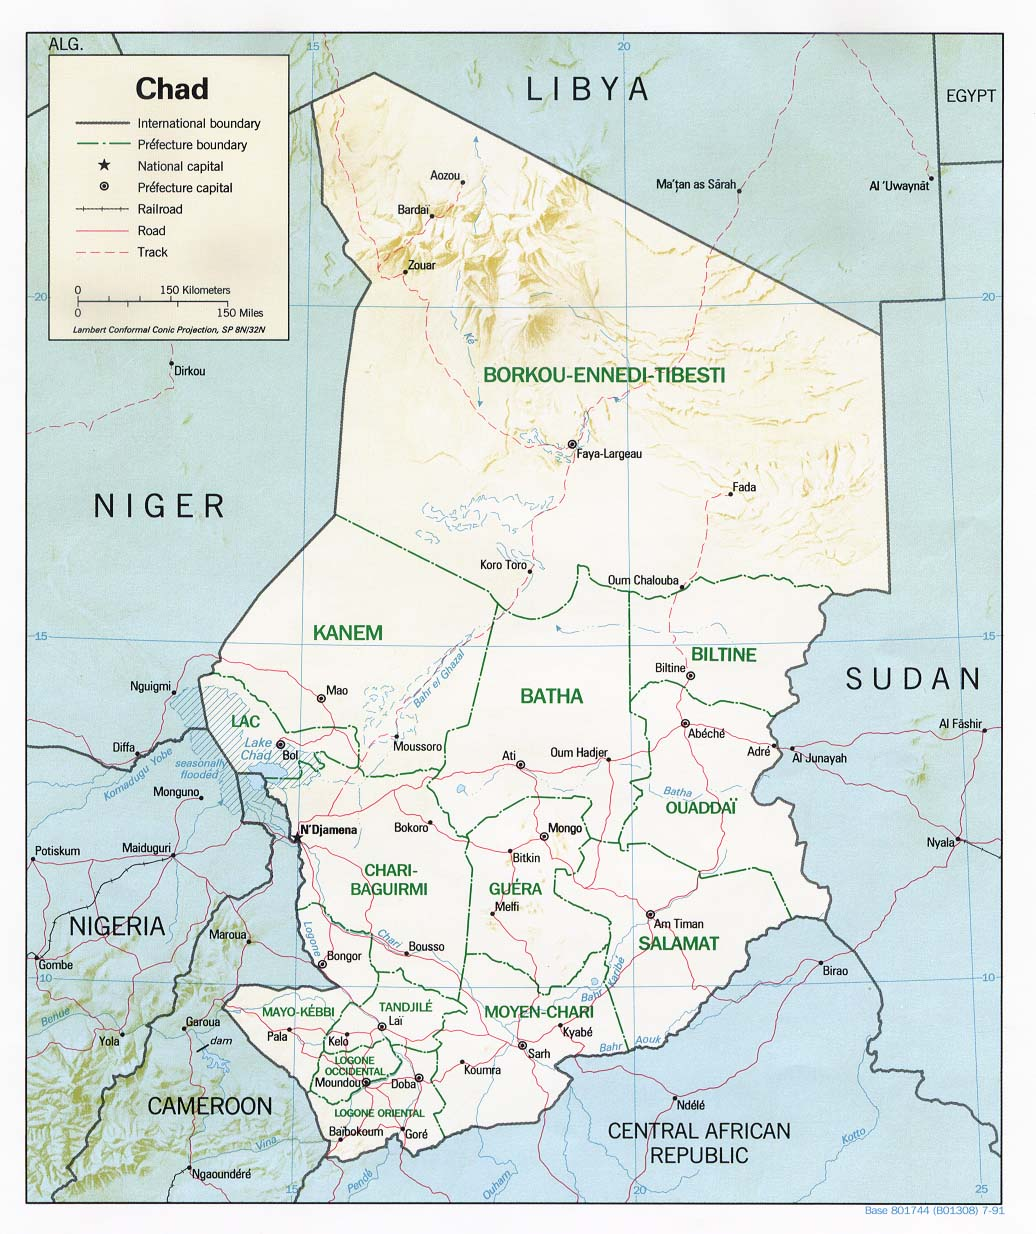 File:Chad relief map 1991, CIA.jpg - Wikimedia Commons